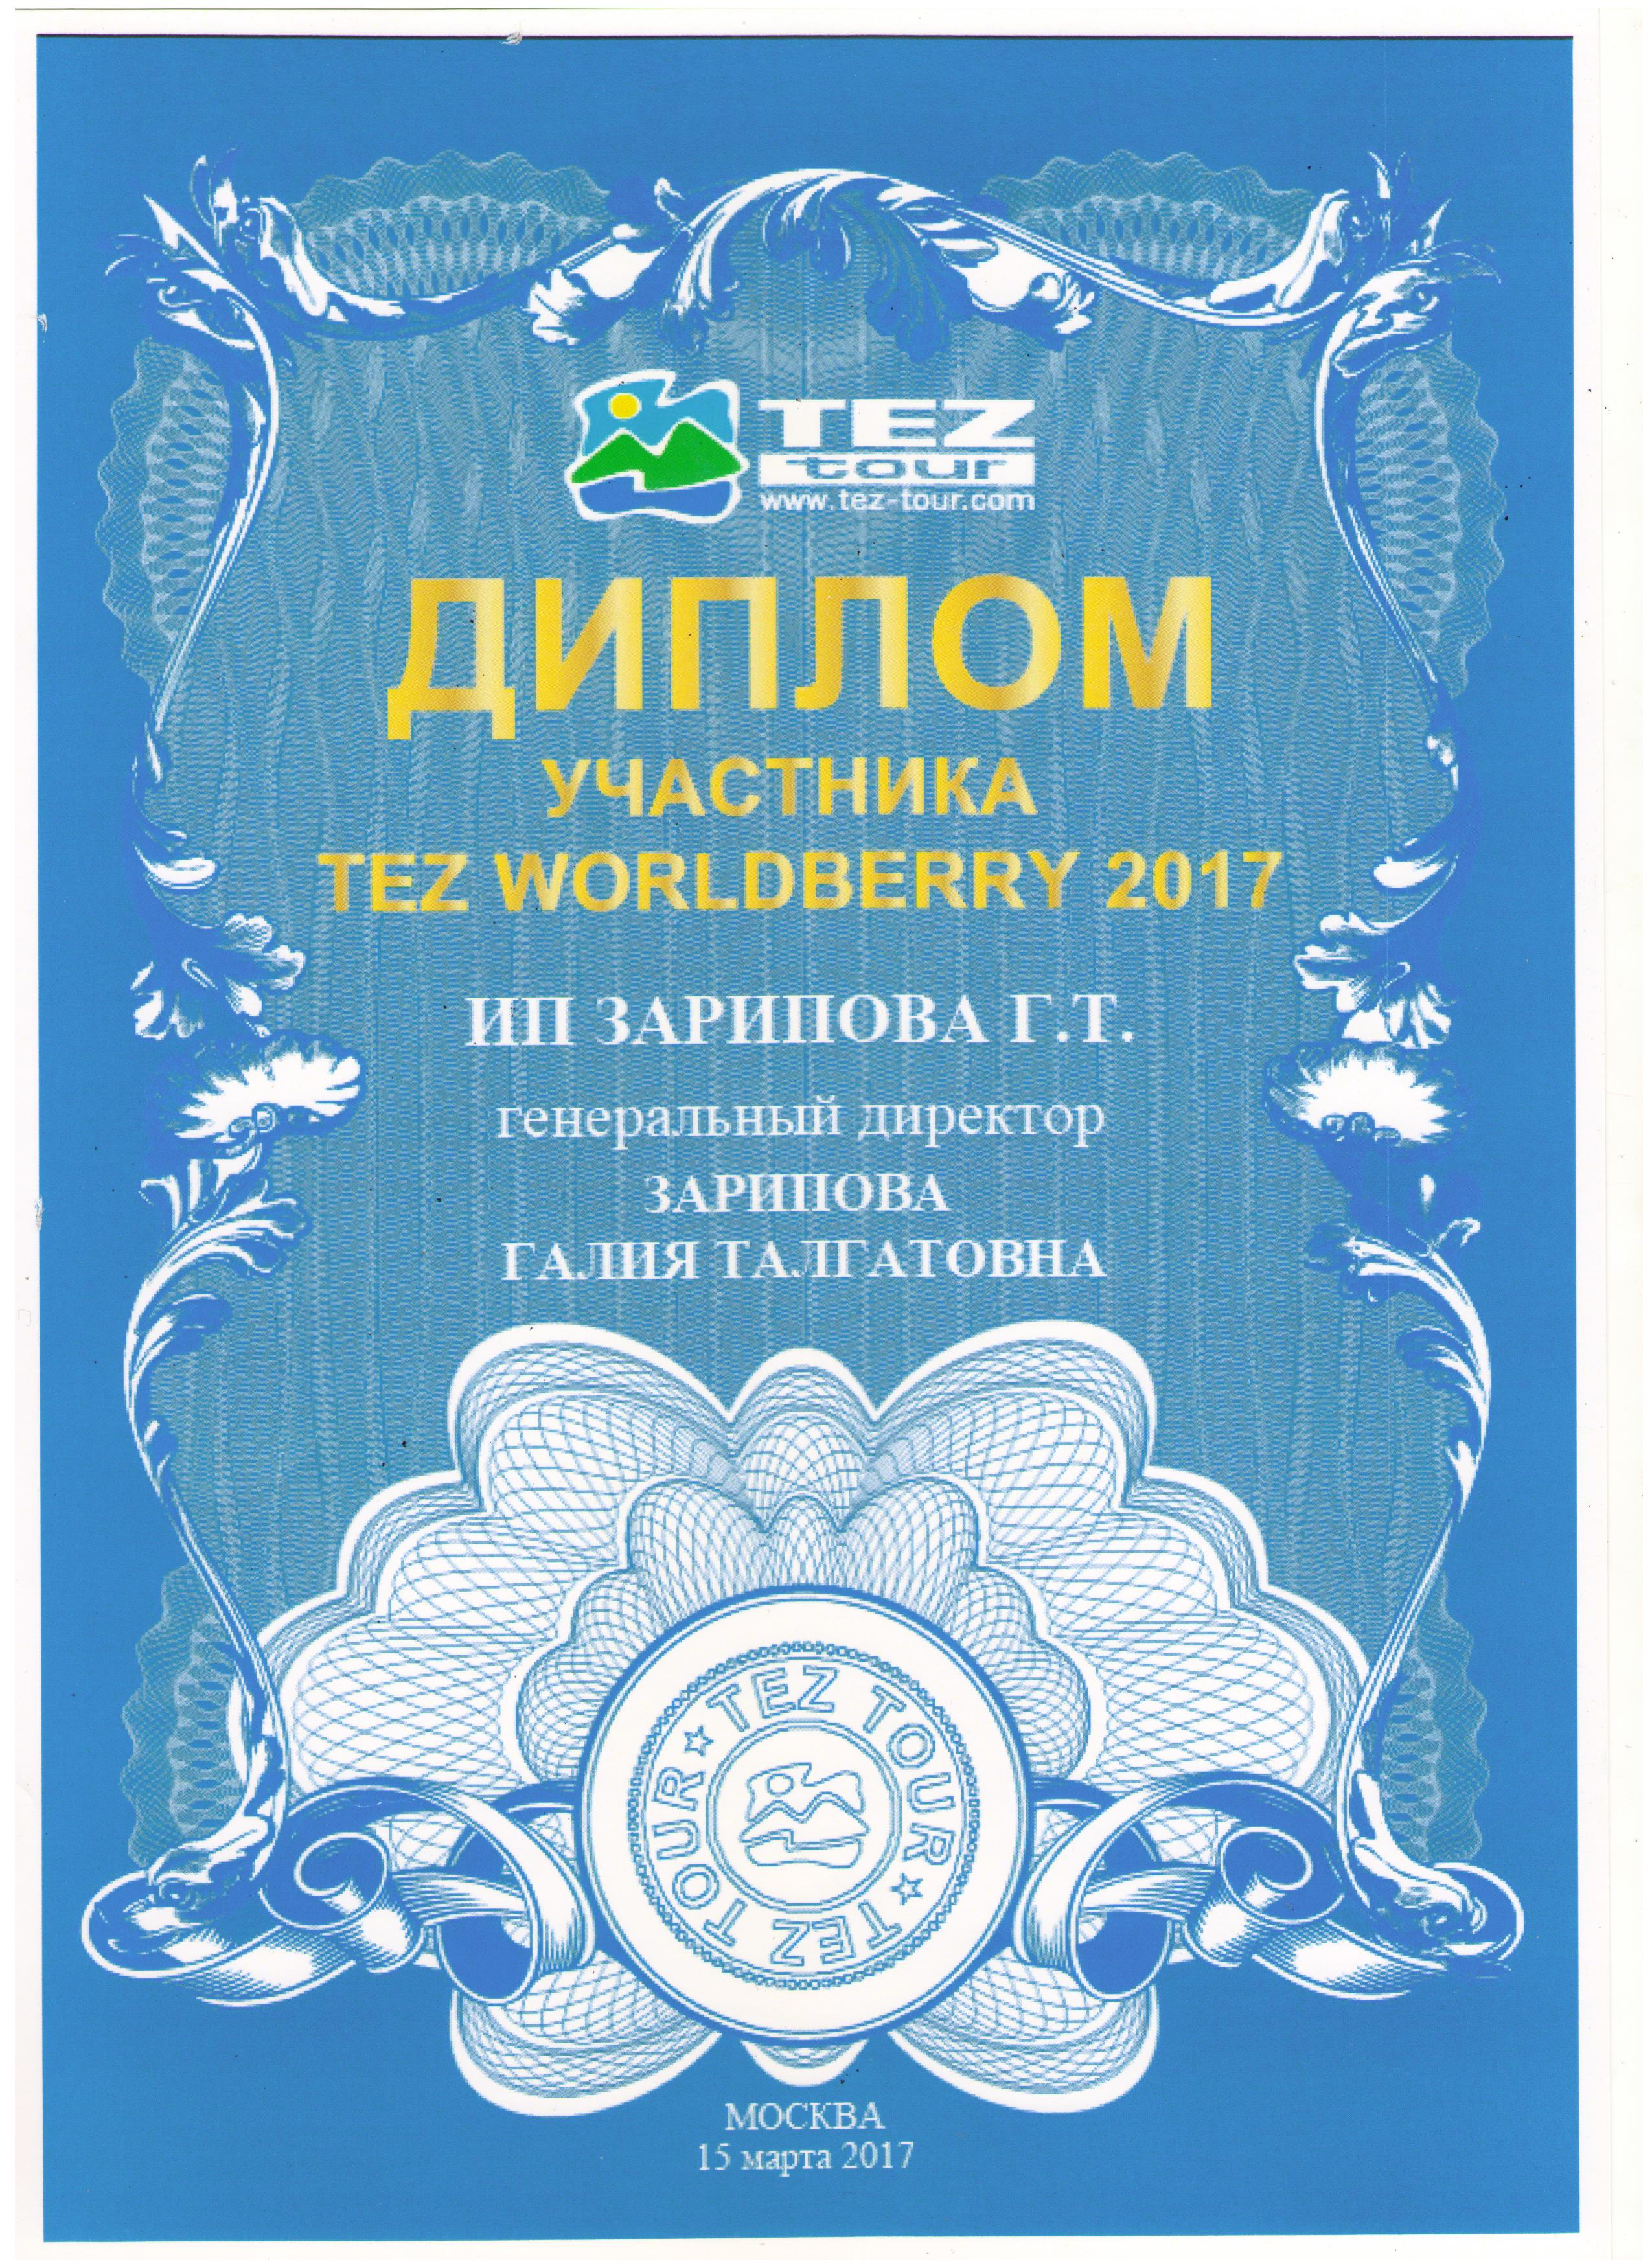 Сертификаты нашей фирмы tez tour Диплом участника tez worldberry в Москве ИП ЗАРИПОВА Г Т 2017 год